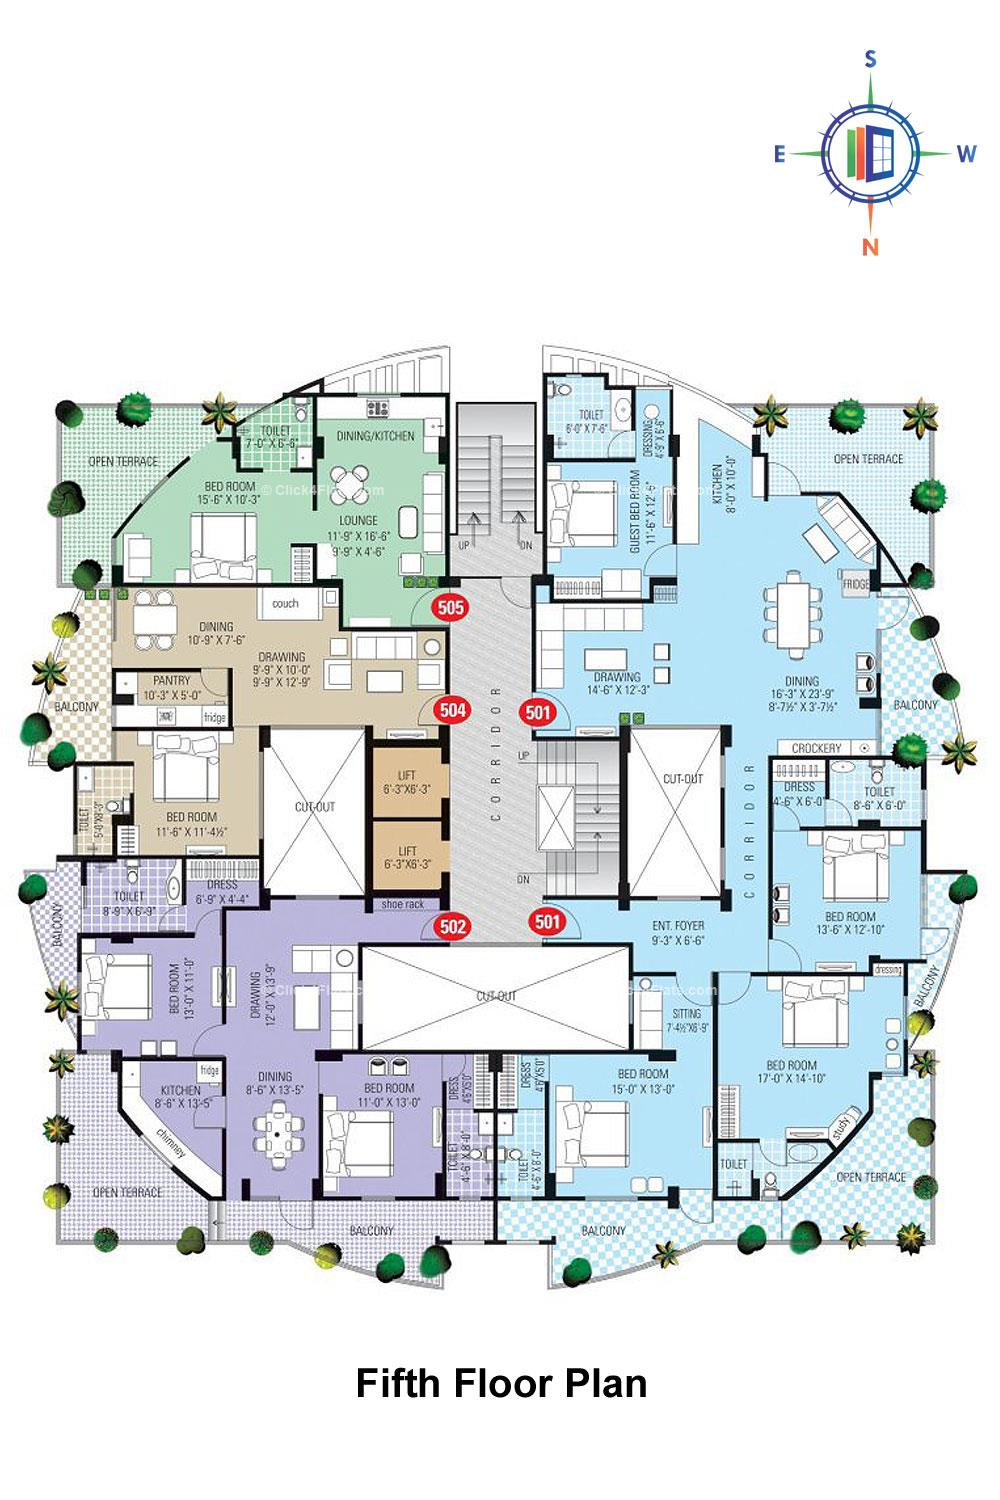 SDC Karan Heights Fifth Floor Plan